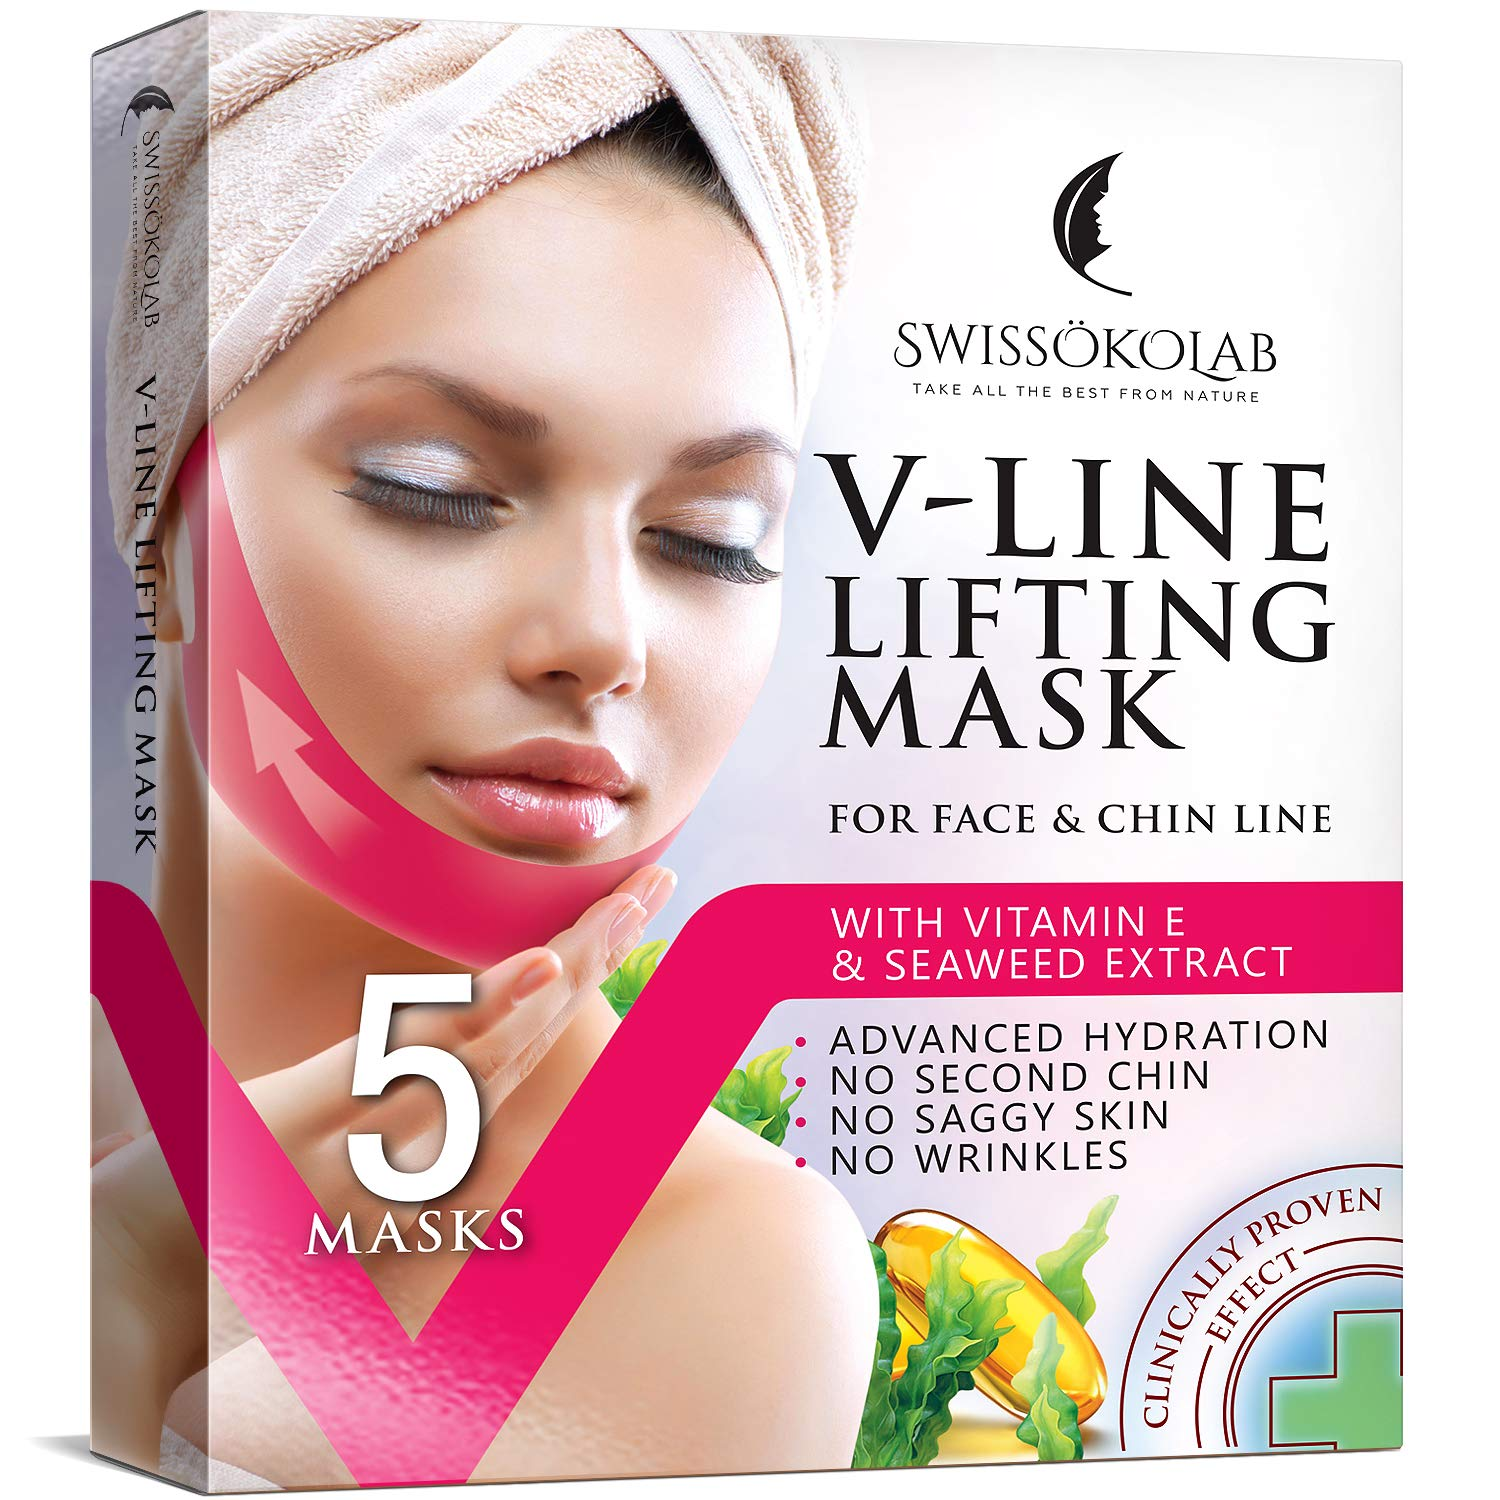 Double Chin Reducer V Line Lifting Mask Face Slimming Strap Chin Neck V Shaped Lift Tape Chin Up Patch V Up Contour Tightening Firming 5 pcs : Beauty